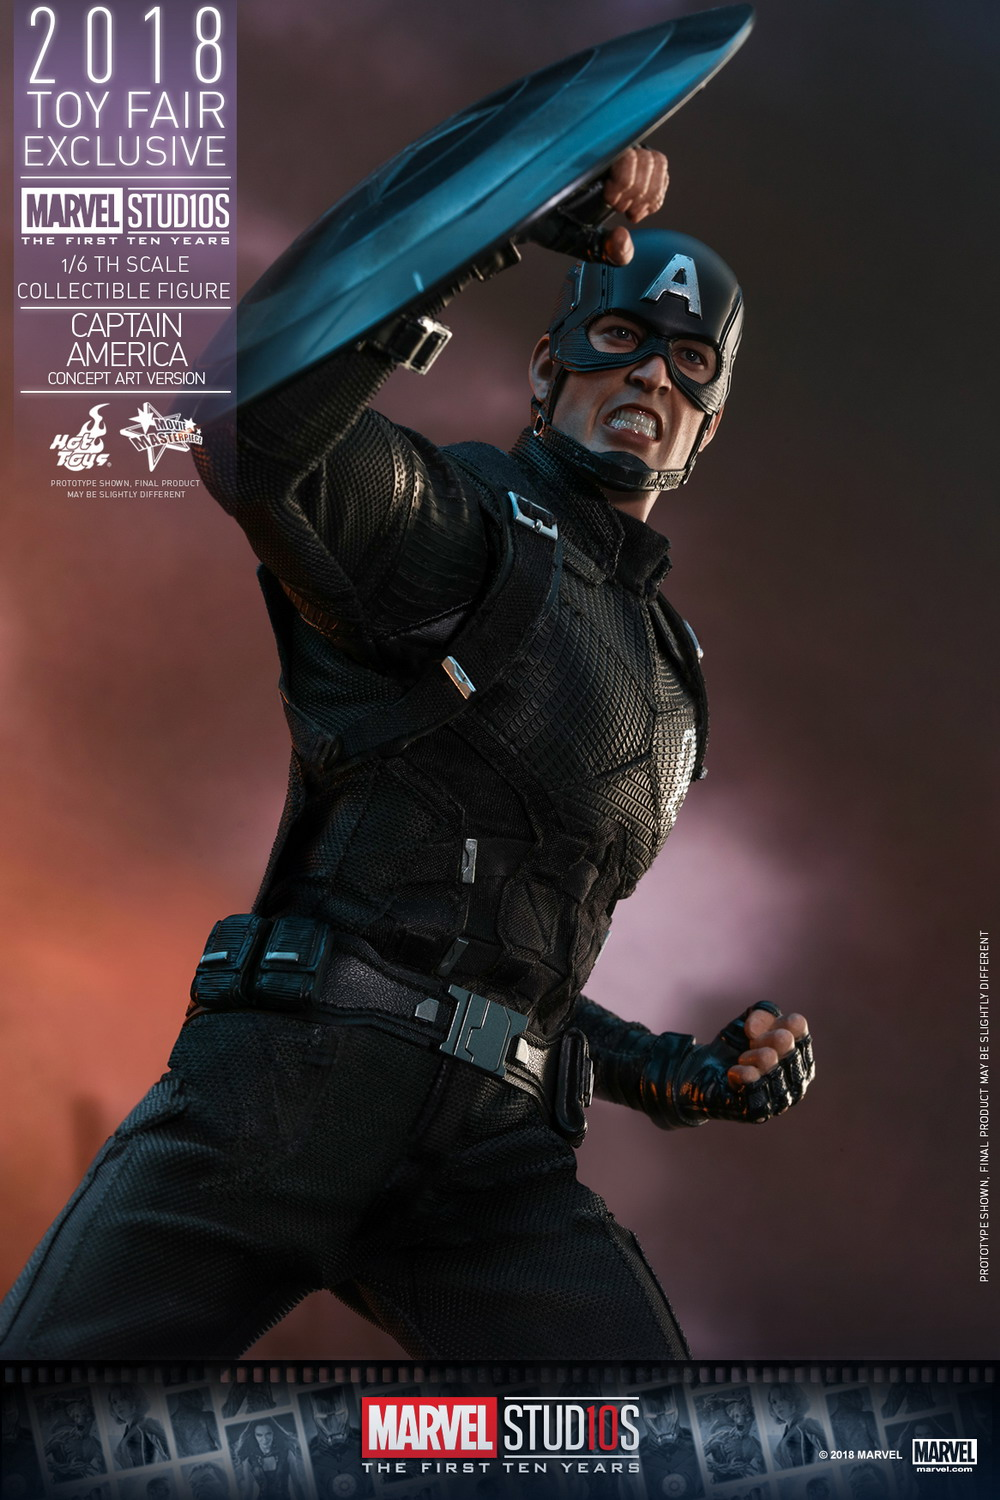 hot toys marvel studios  the first ten years 1  6 captain america  concept art version